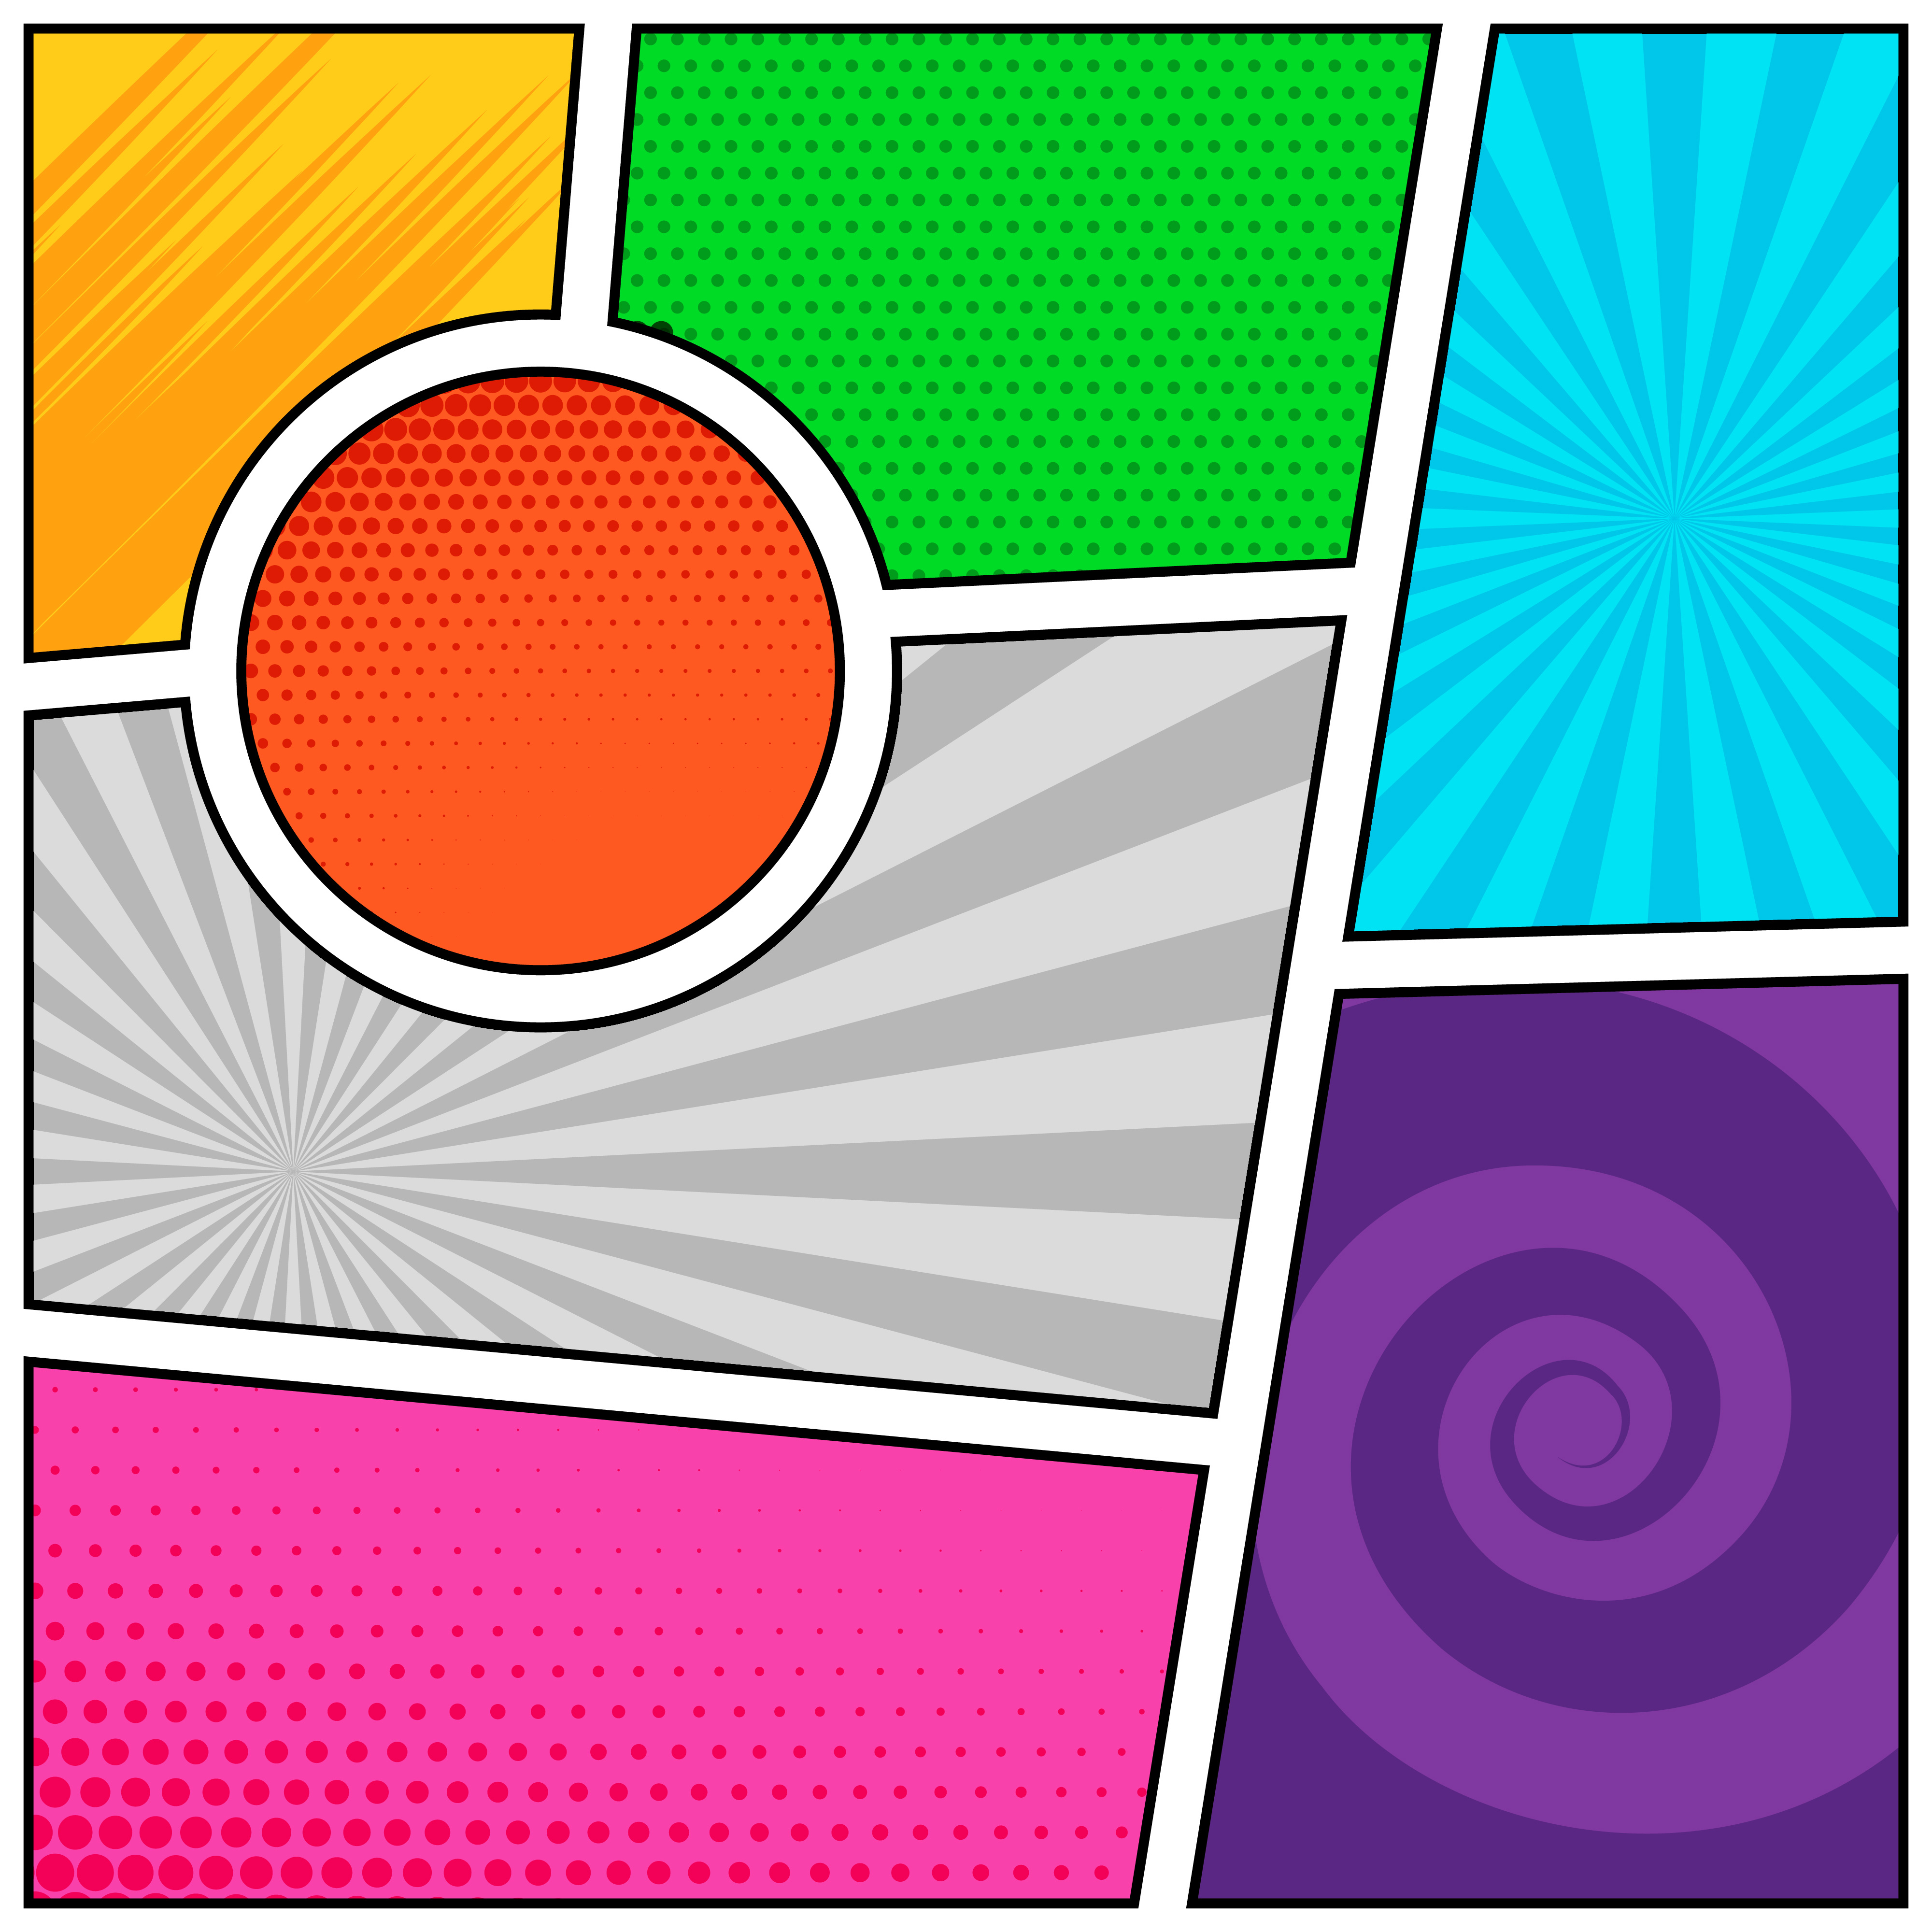 empty comic book pages background template design